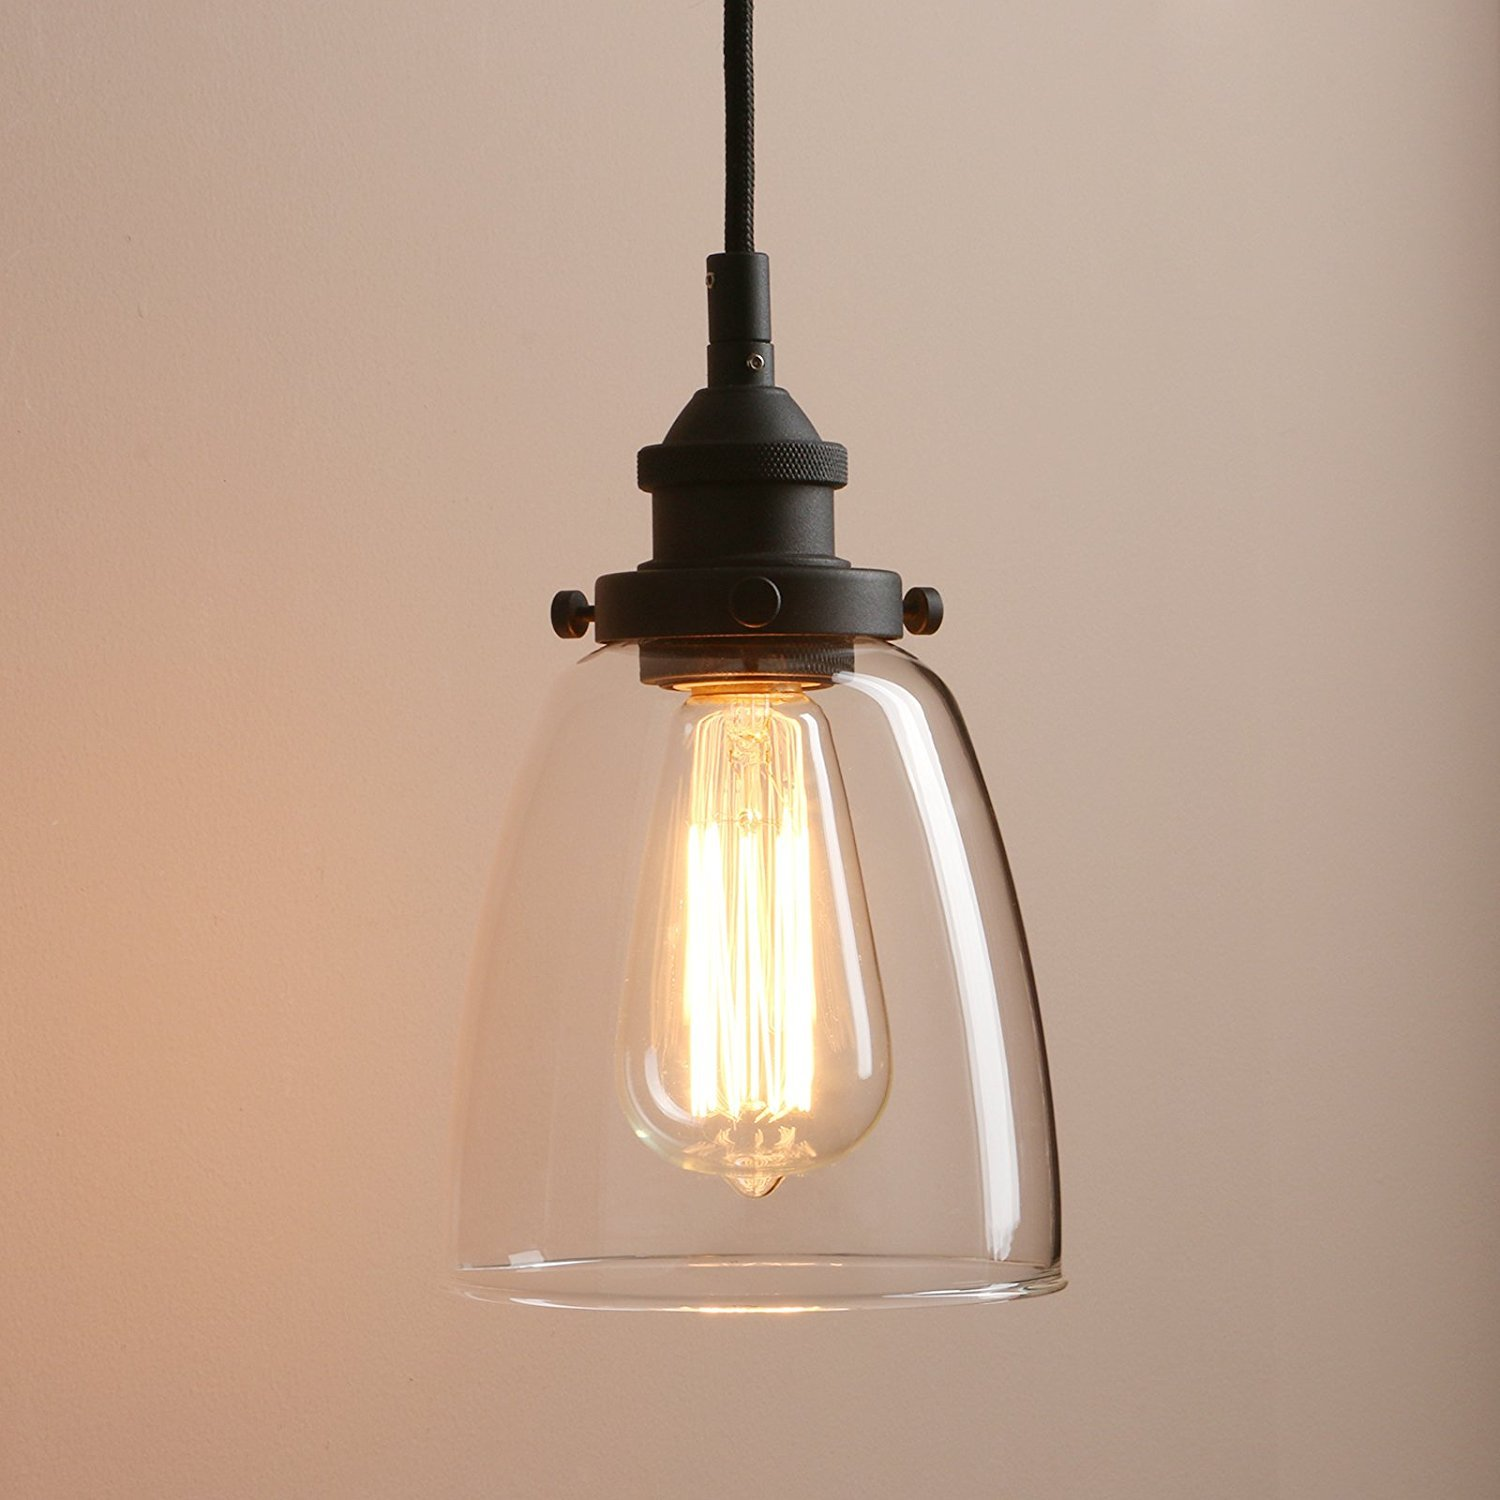 Pathson Retro Pendant Lighting, Industrial Small Hanging Light with Clear Glass and Textile Cord, Adjustable Kitchen Lamp for Hotels Hallway Shops Cafe Bar Flush Mount Ceiling Light Fixtures